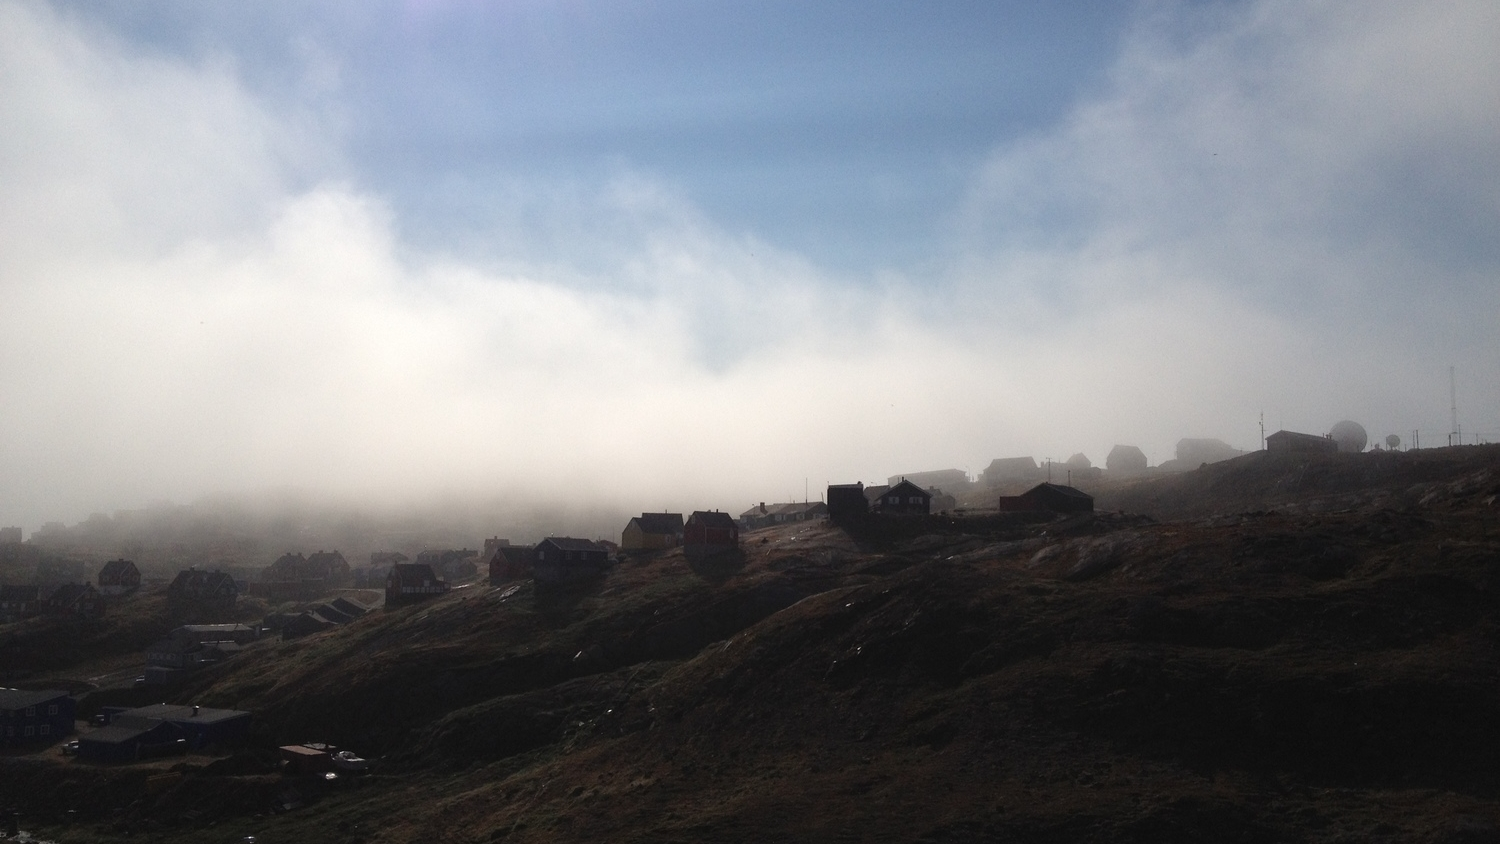 Houses in the morning fog in Tasiilaq, Greenland